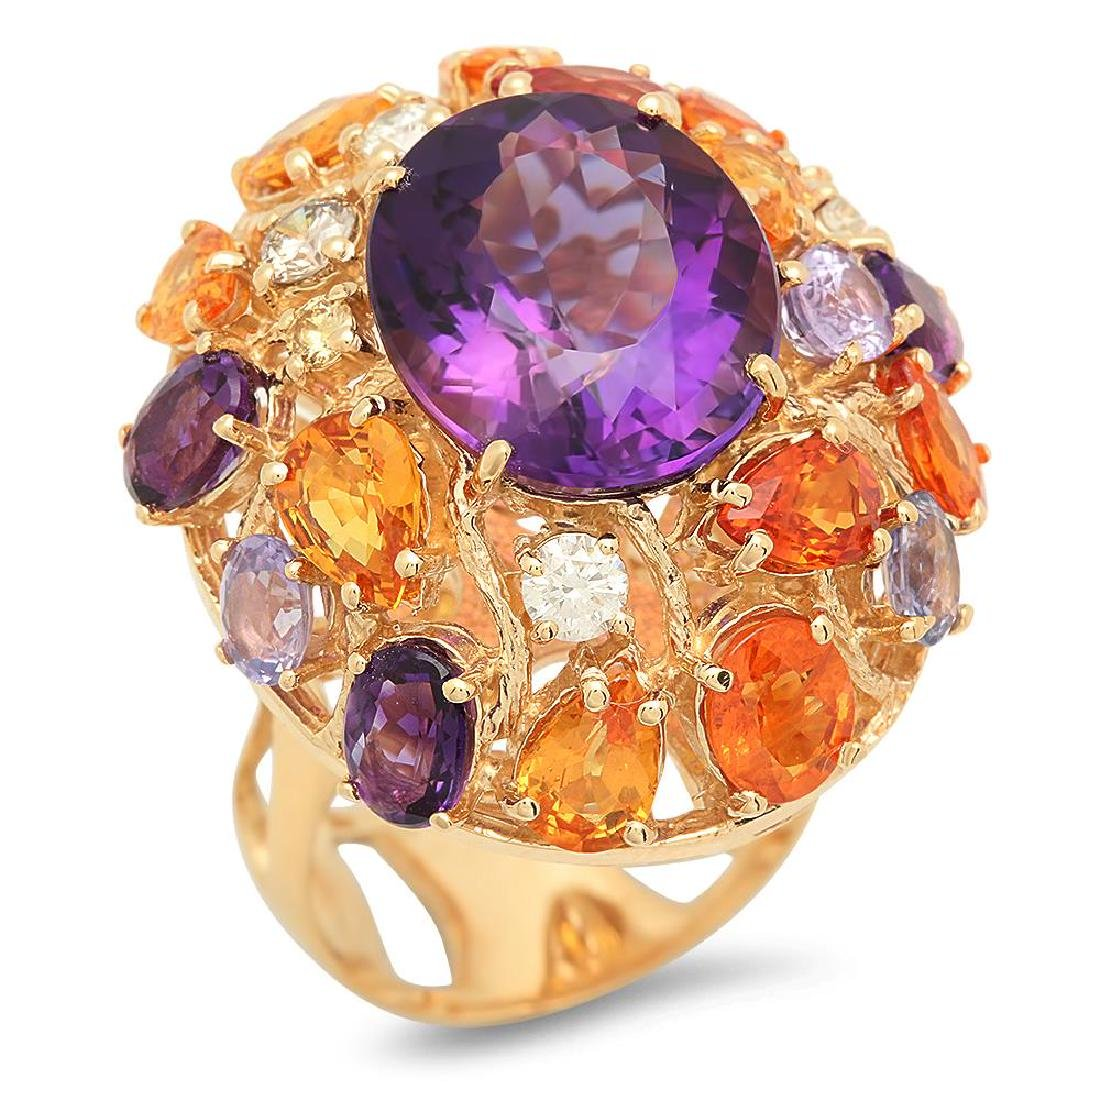 14K Gold 8.82ct Amethyst 7.39ct Sapphire 0.51cts